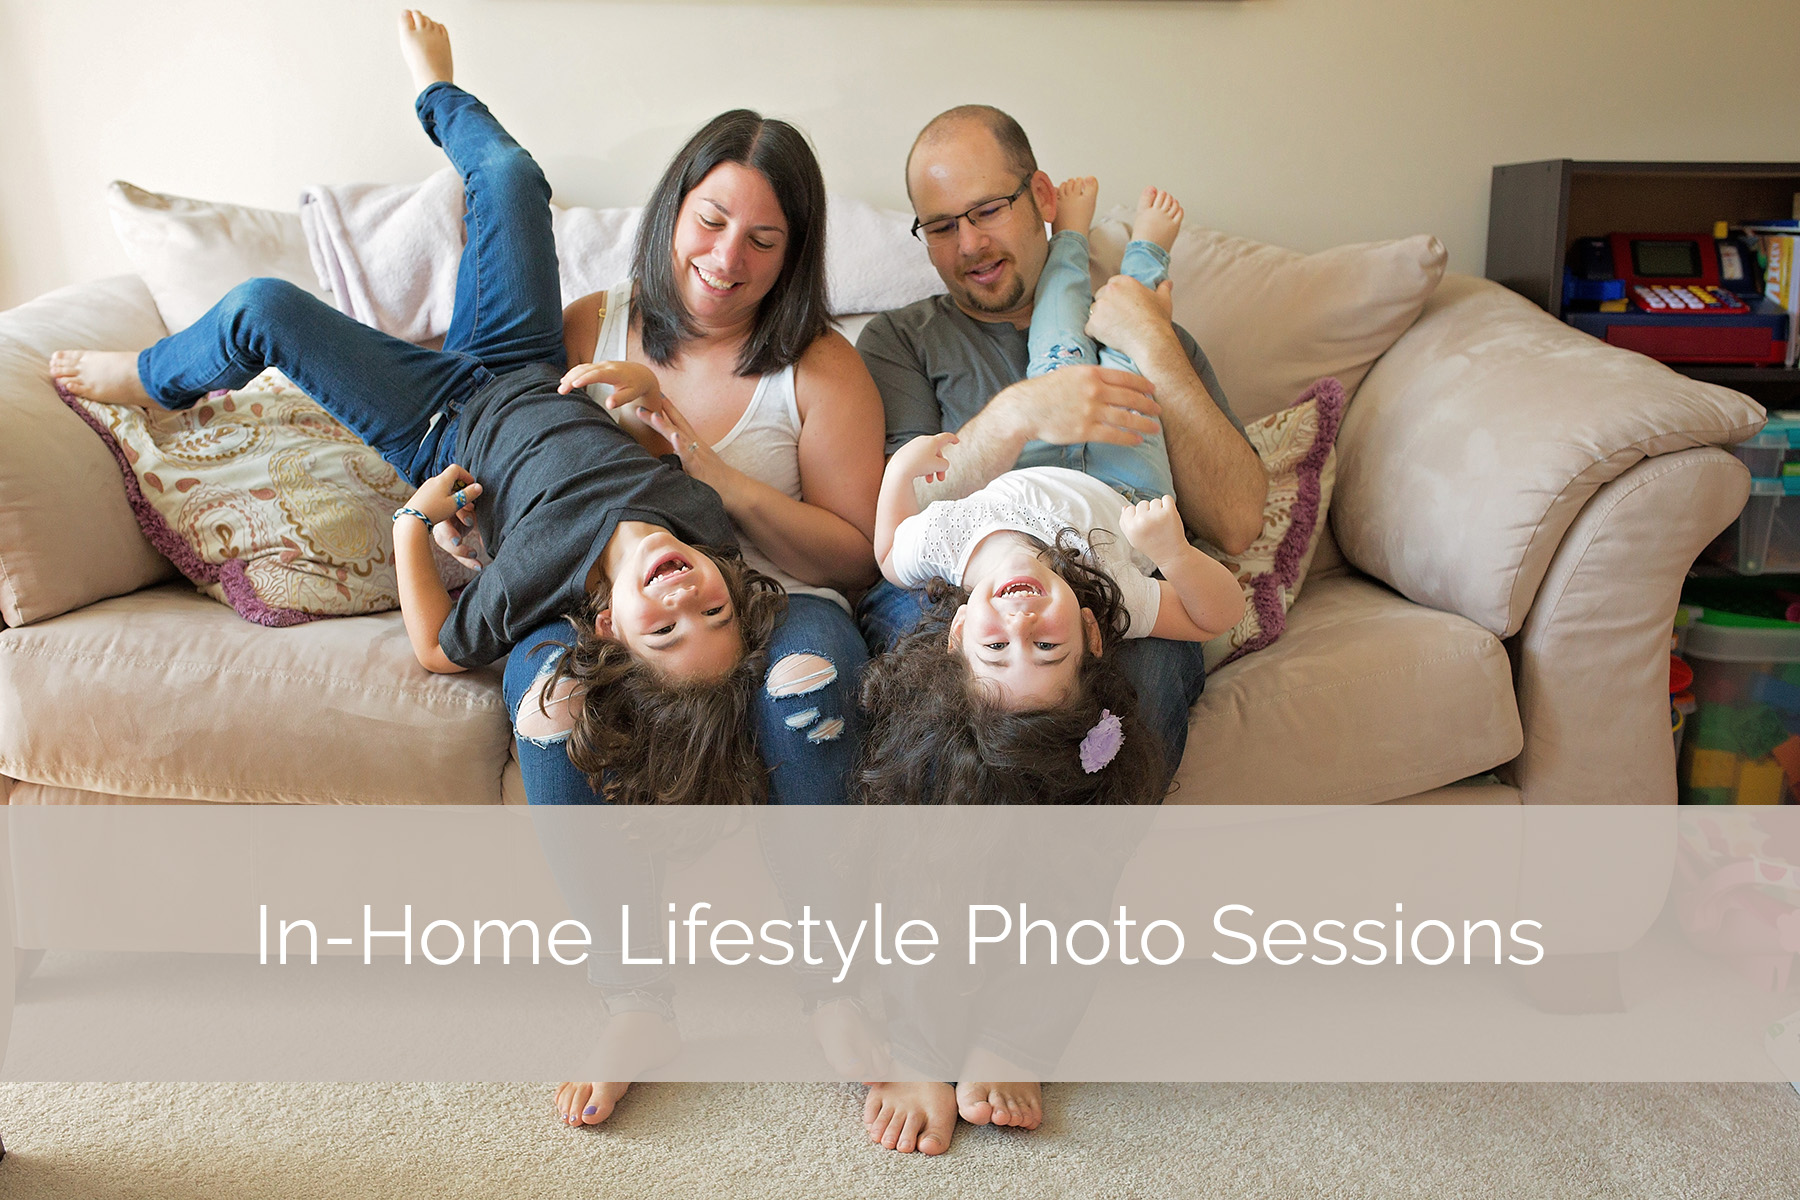 mom dad son and daughter all smiling on couch while parents hold kids upsidedown